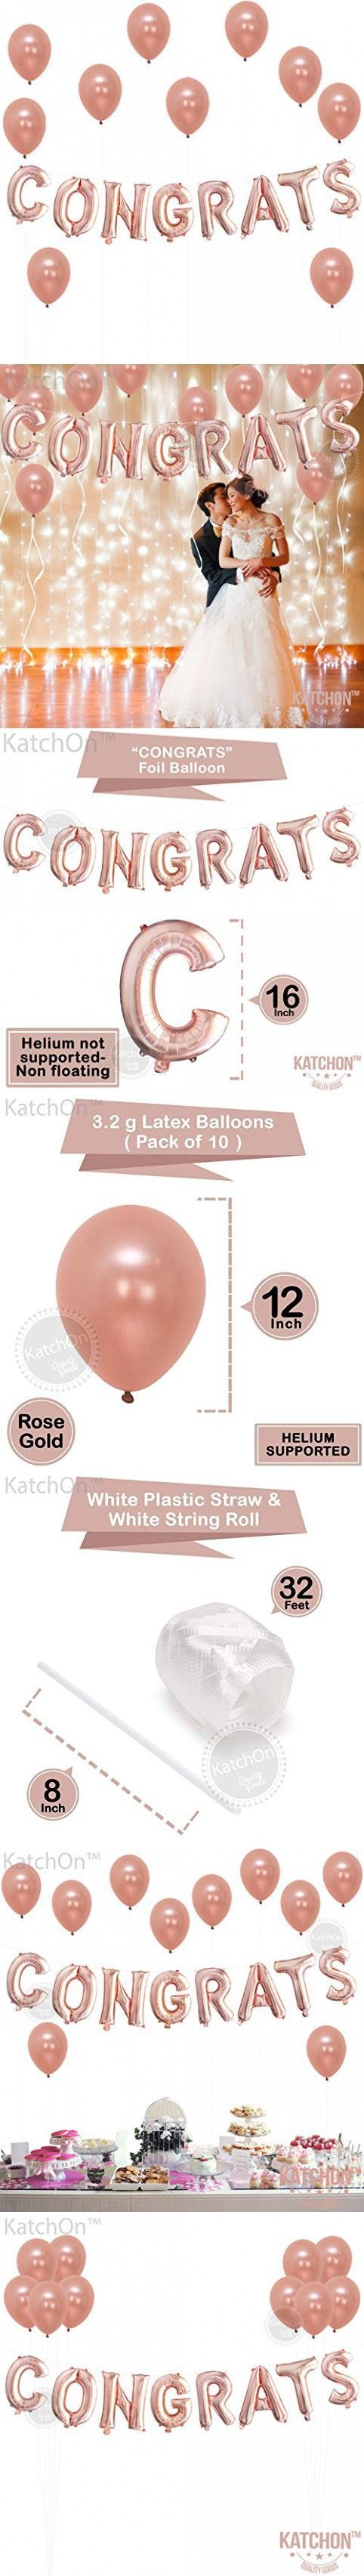 Congrats Rose Gold Balloons Decorations  Great for Graduation Decorations Wedding Bridal Baby Shower Party Supplies | 16 Inch Mylar Foil Letter Balloo...